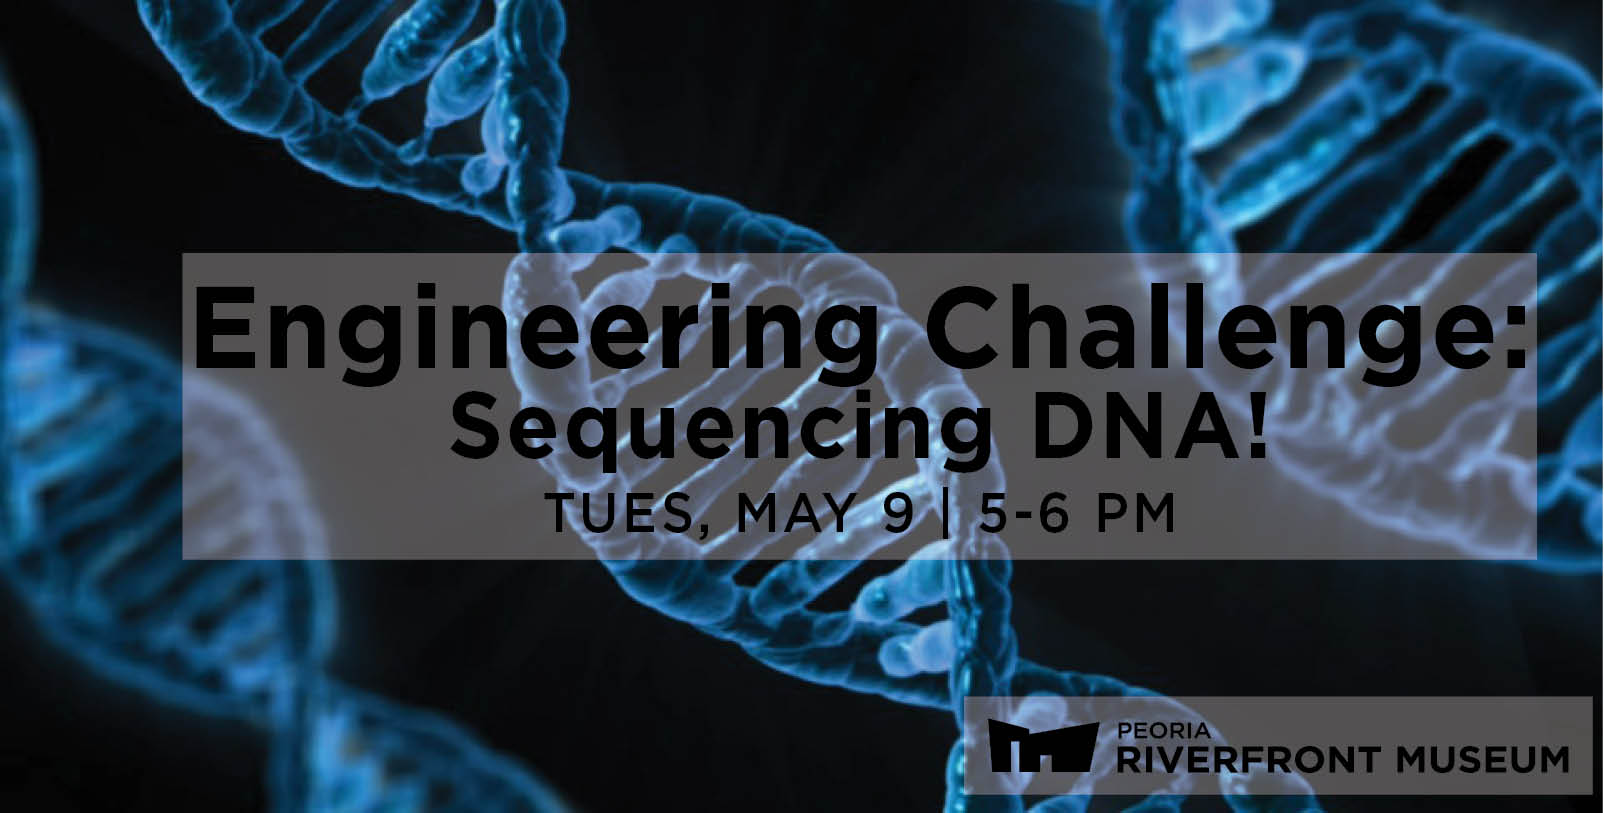 Engineering Challenge Sequencing Dna Web Banner